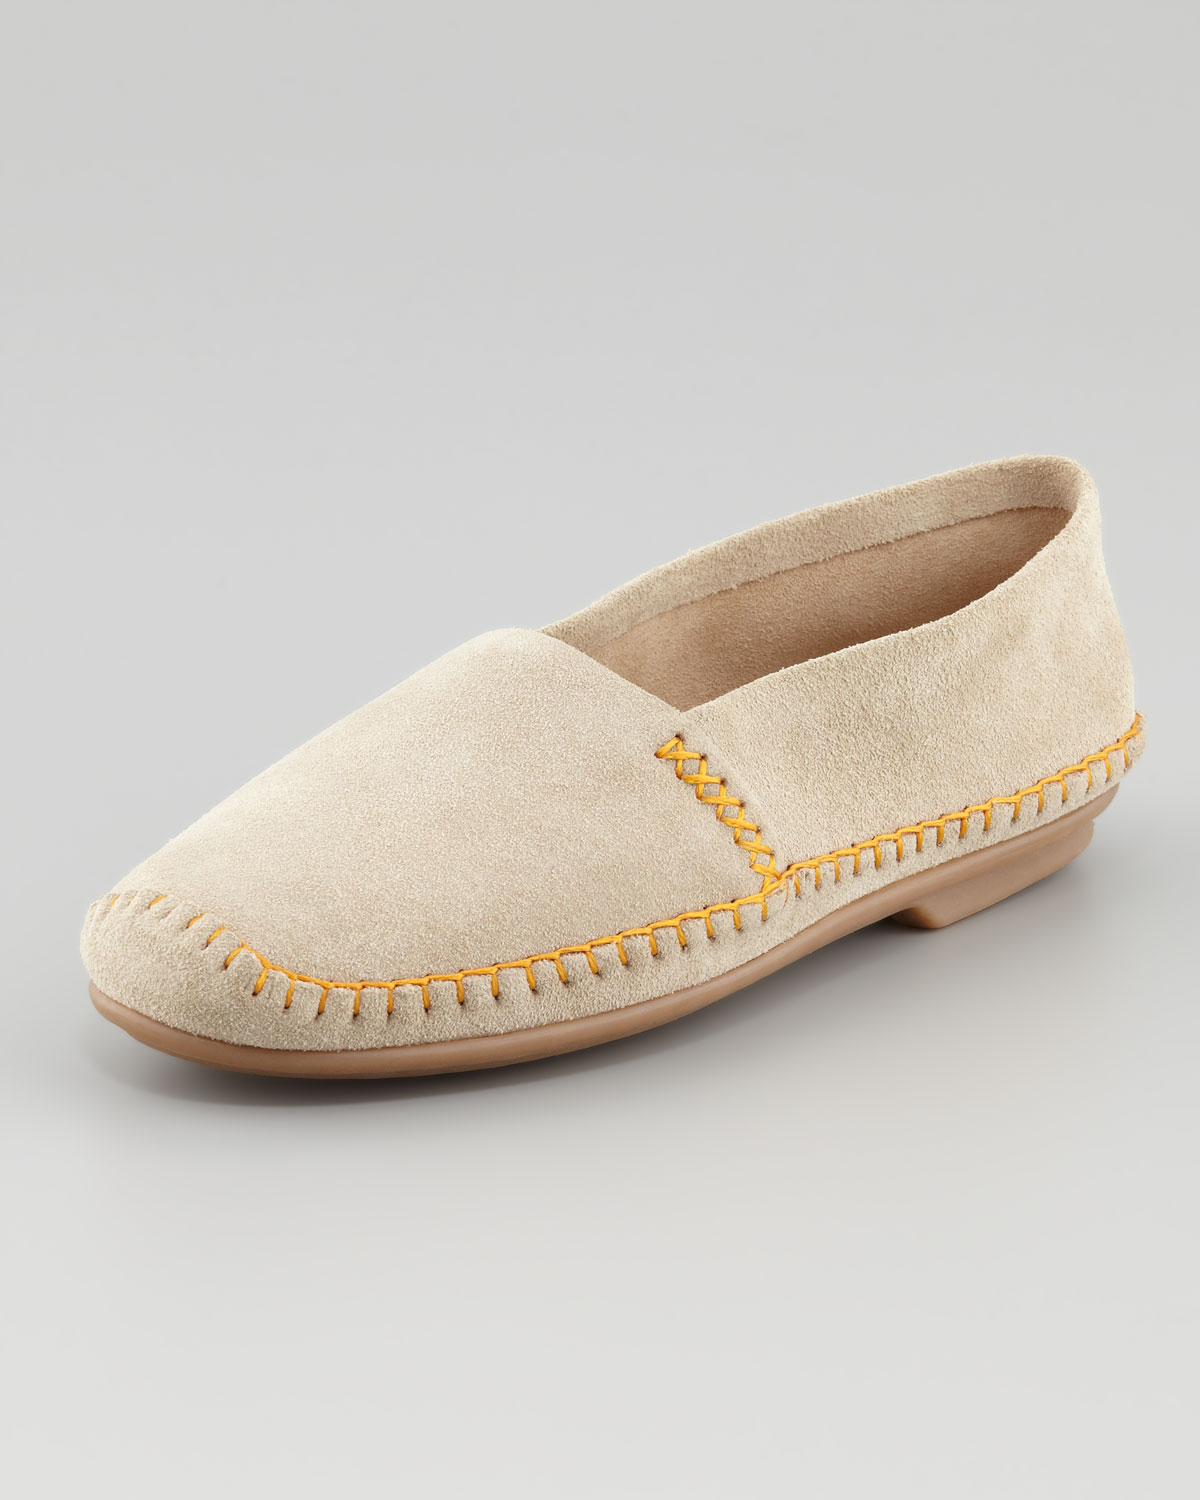 Kate Spade Womens Moccasin Cotton Shoes